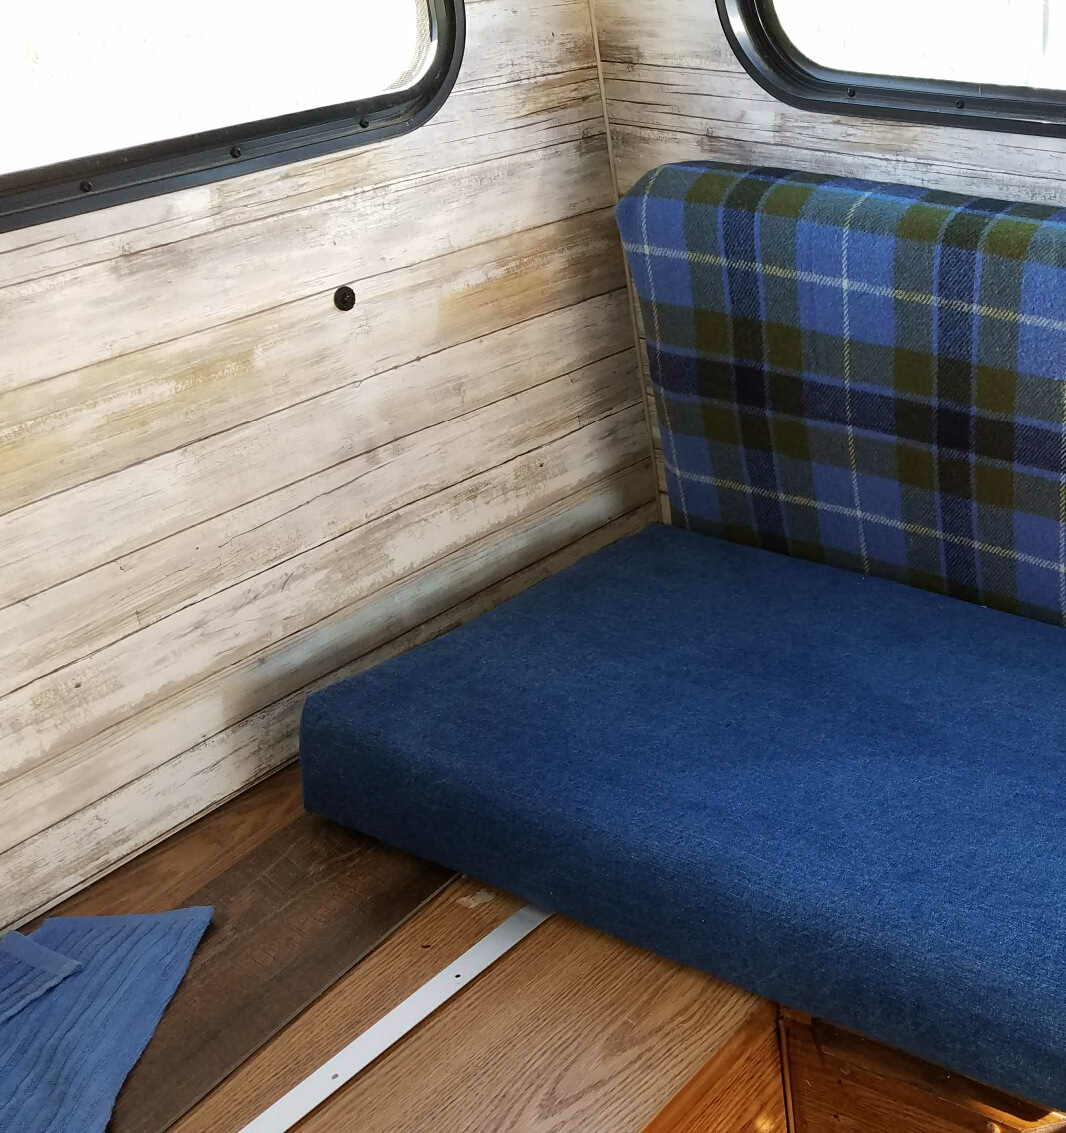 Wool and denim for seat cushions.